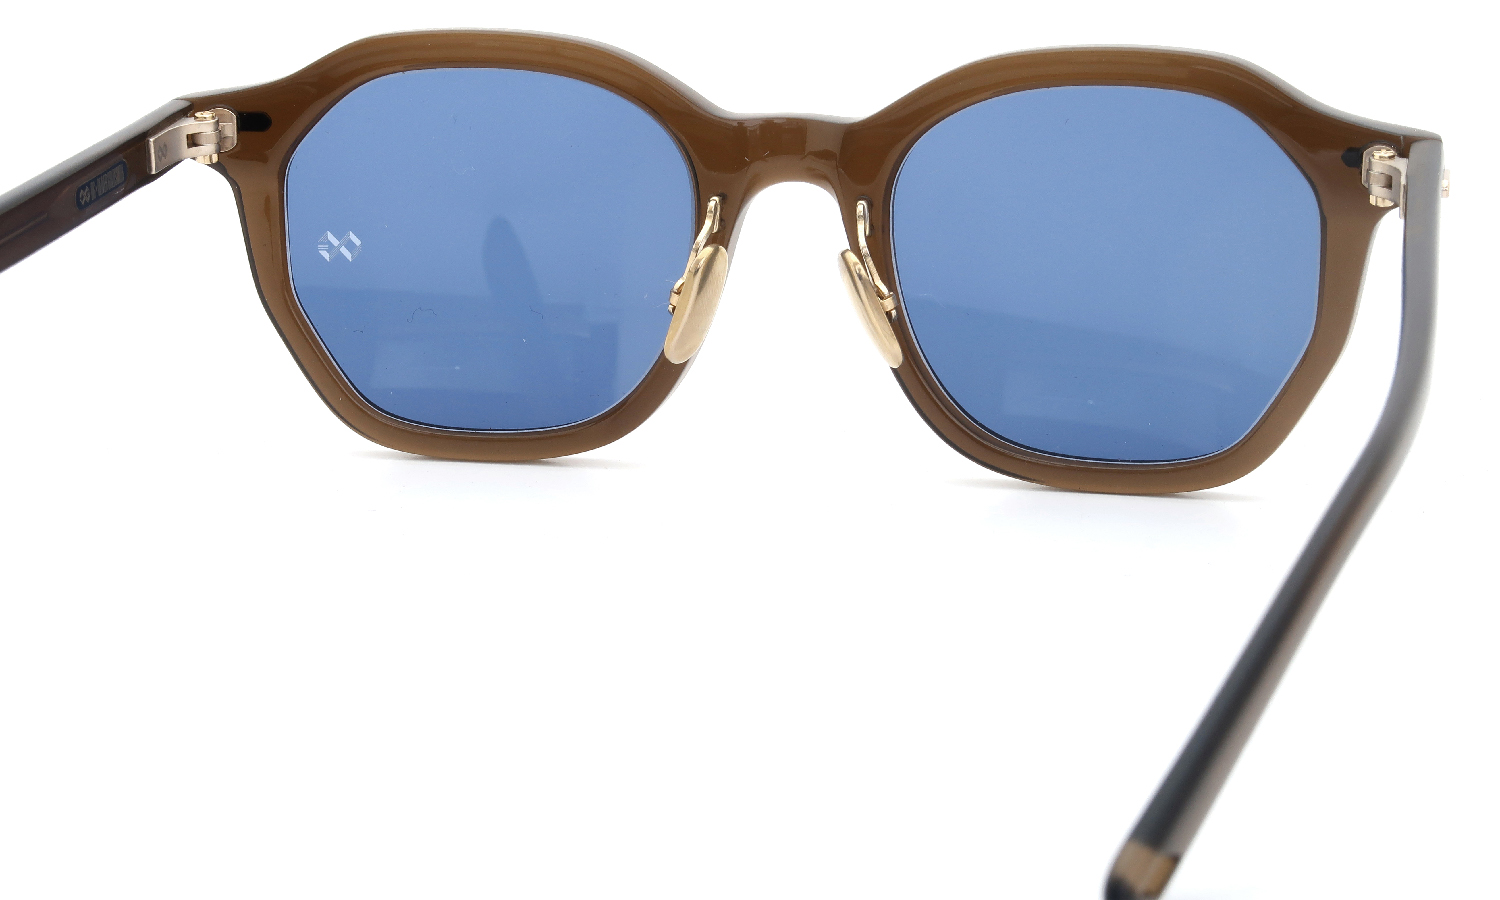 OG × OLIVER GOLDSMITH Re:BETSY 49 SG リ:ベッツィ 7